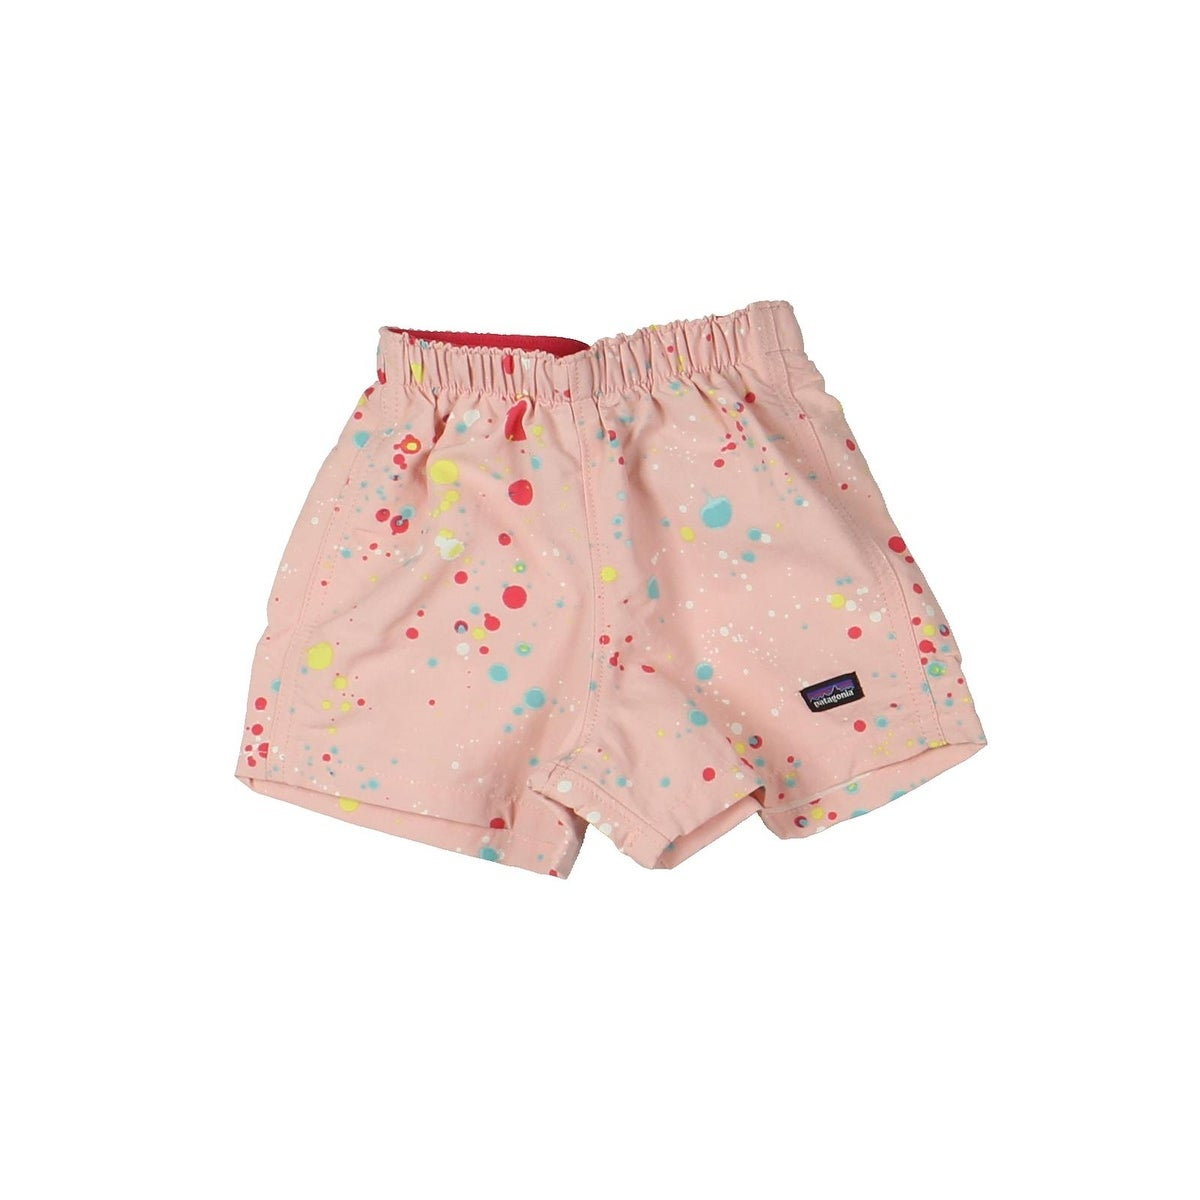 1508210aa1 Shop Patagonia Baggies Casual Shorts Printed Nylon - 3-6 MO - Free Shipping  On Orders Over $45 - Overstock - 27093306